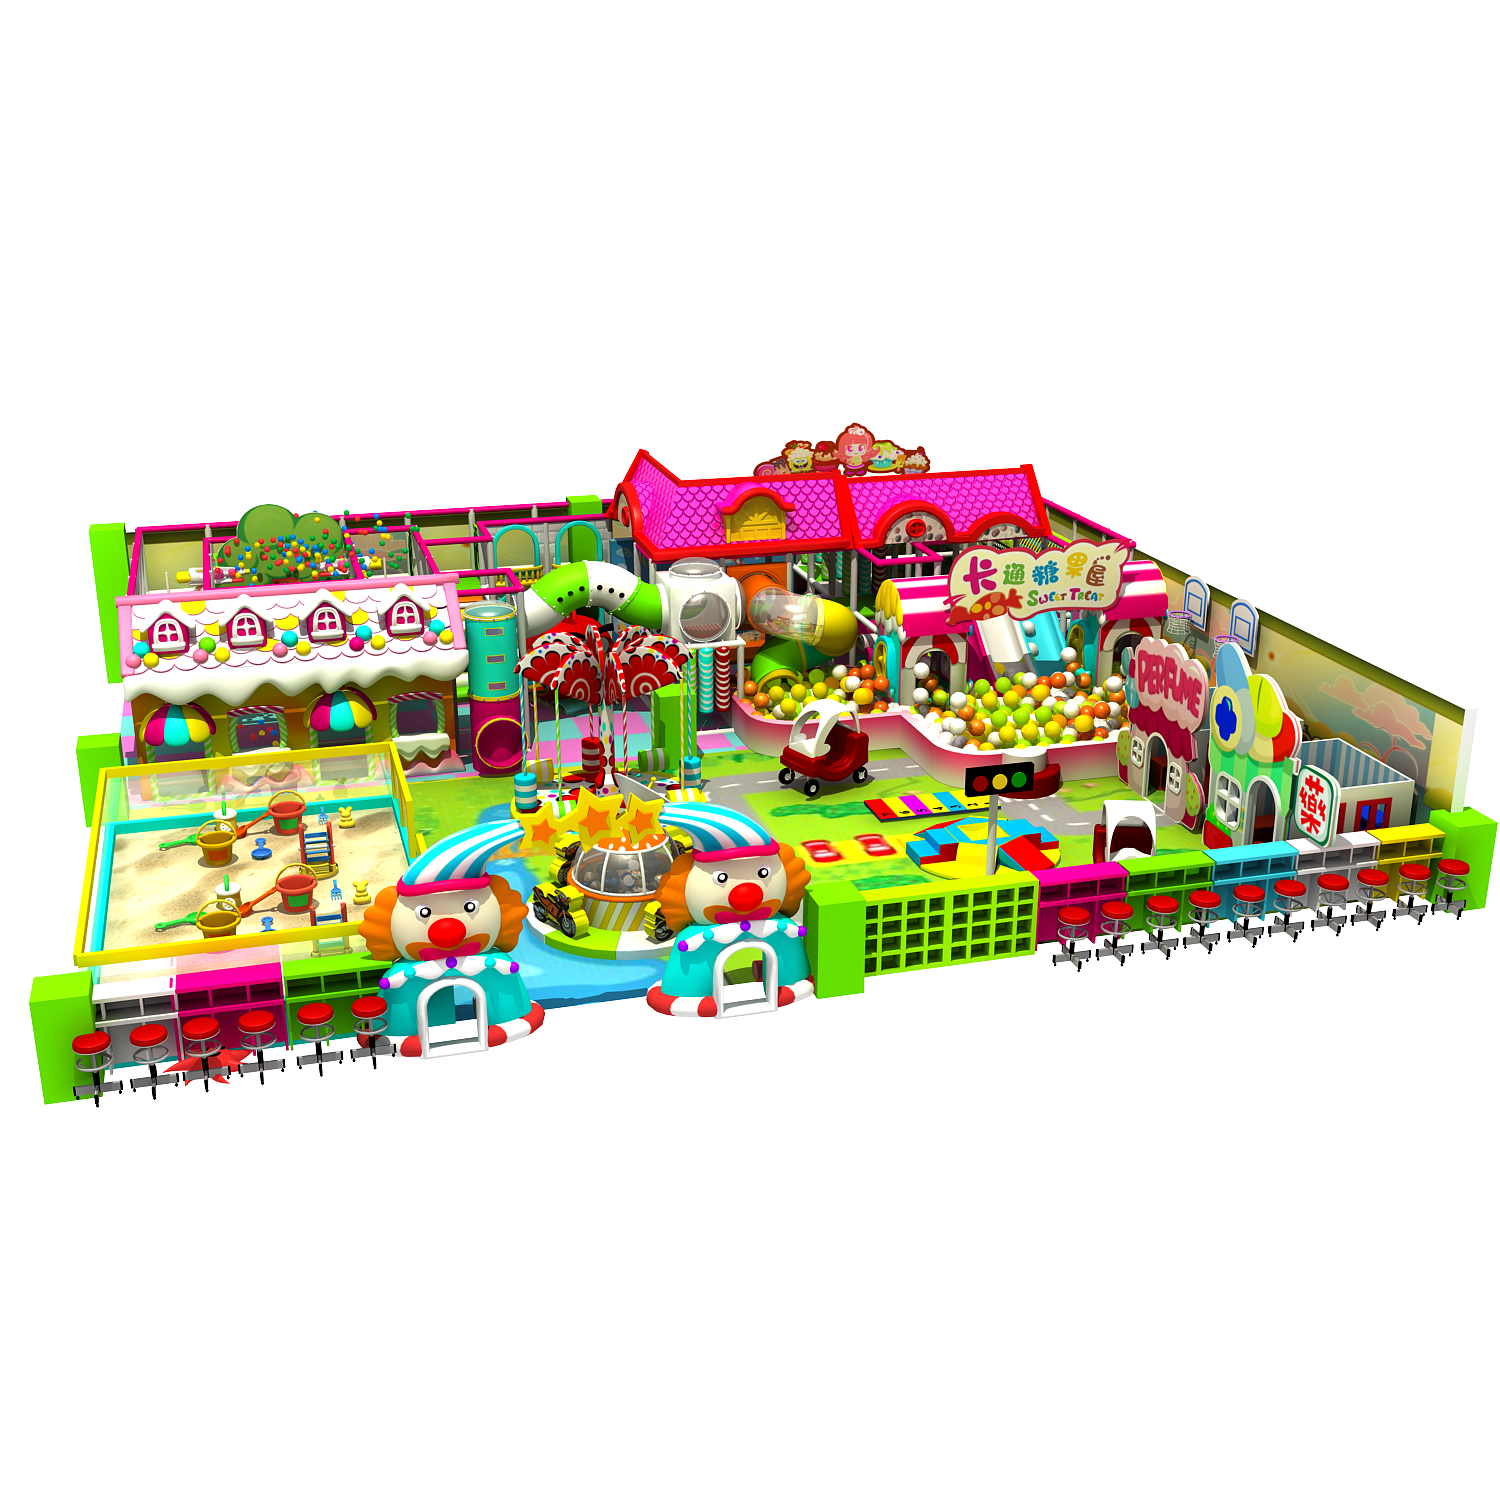 dream garden soft indoor playground equipment